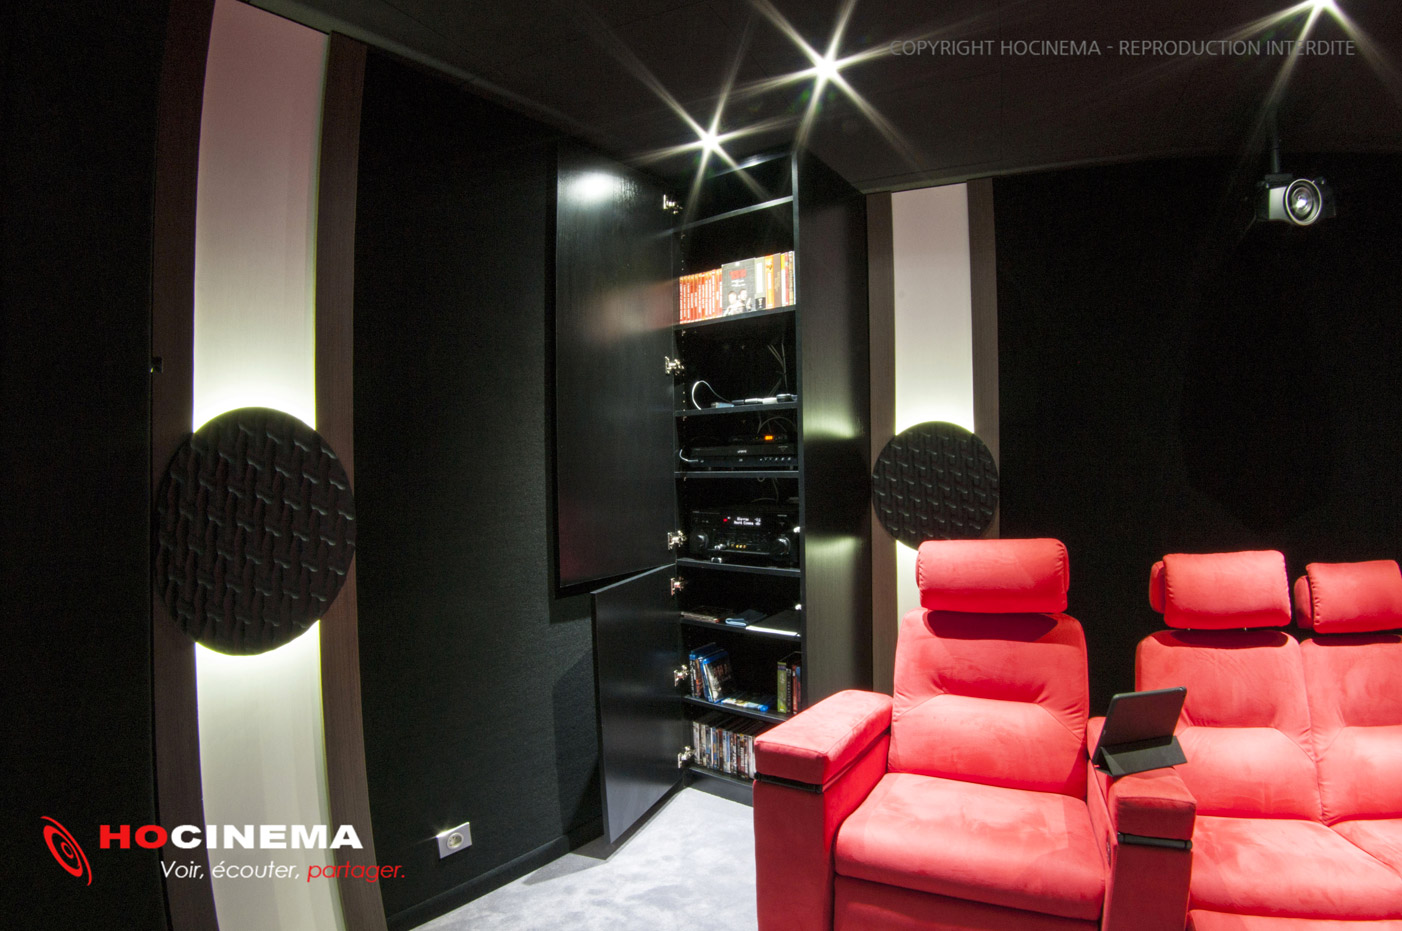 salle cinma maison gallery of dcoration sous sol cinema maison with salle cinma maison le rve. Black Bedroom Furniture Sets. Home Design Ideas